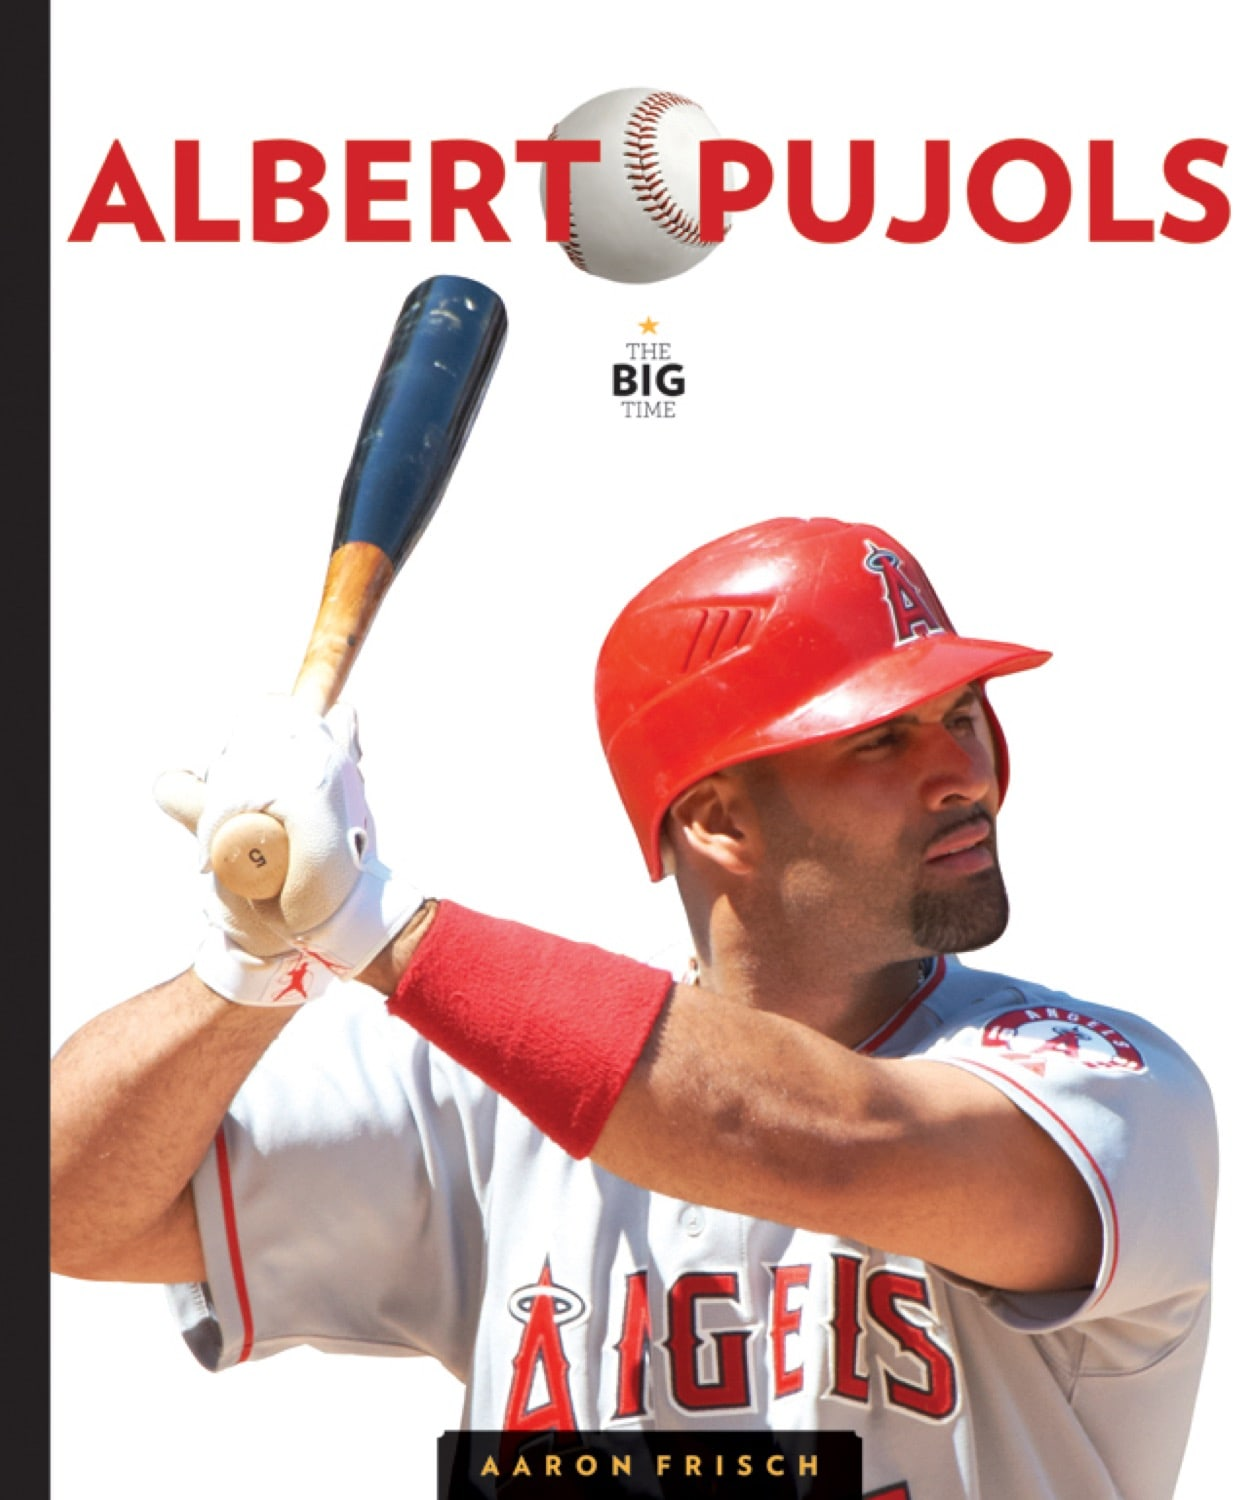 The Big Time: Albert Pujols